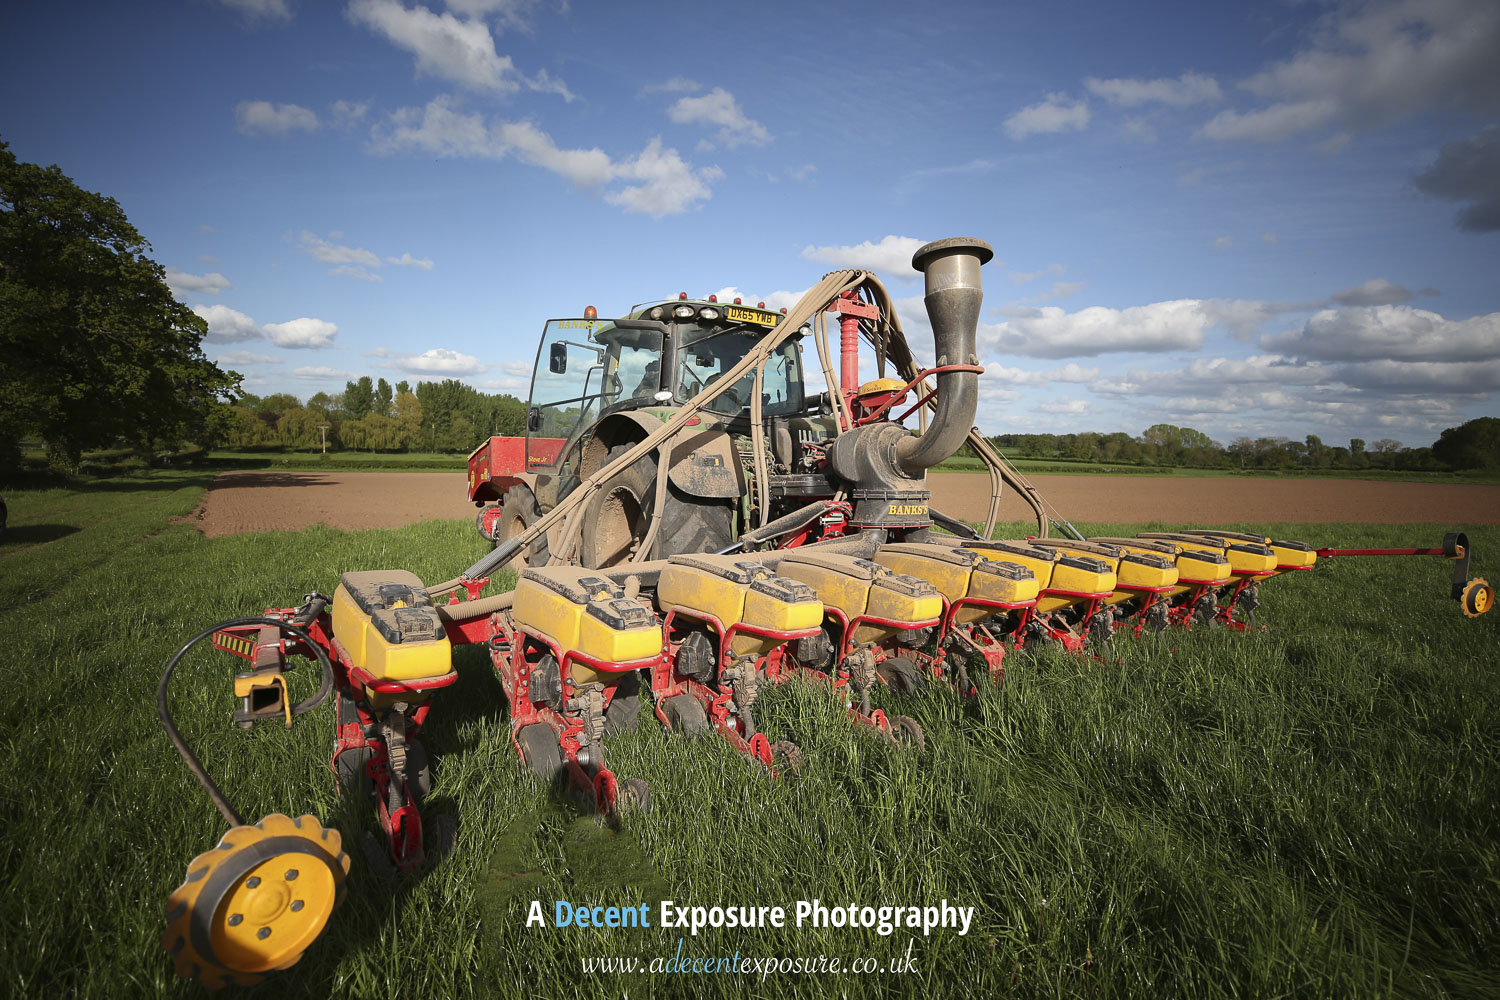 A Decent Exposure Agricultural & Farming Photography